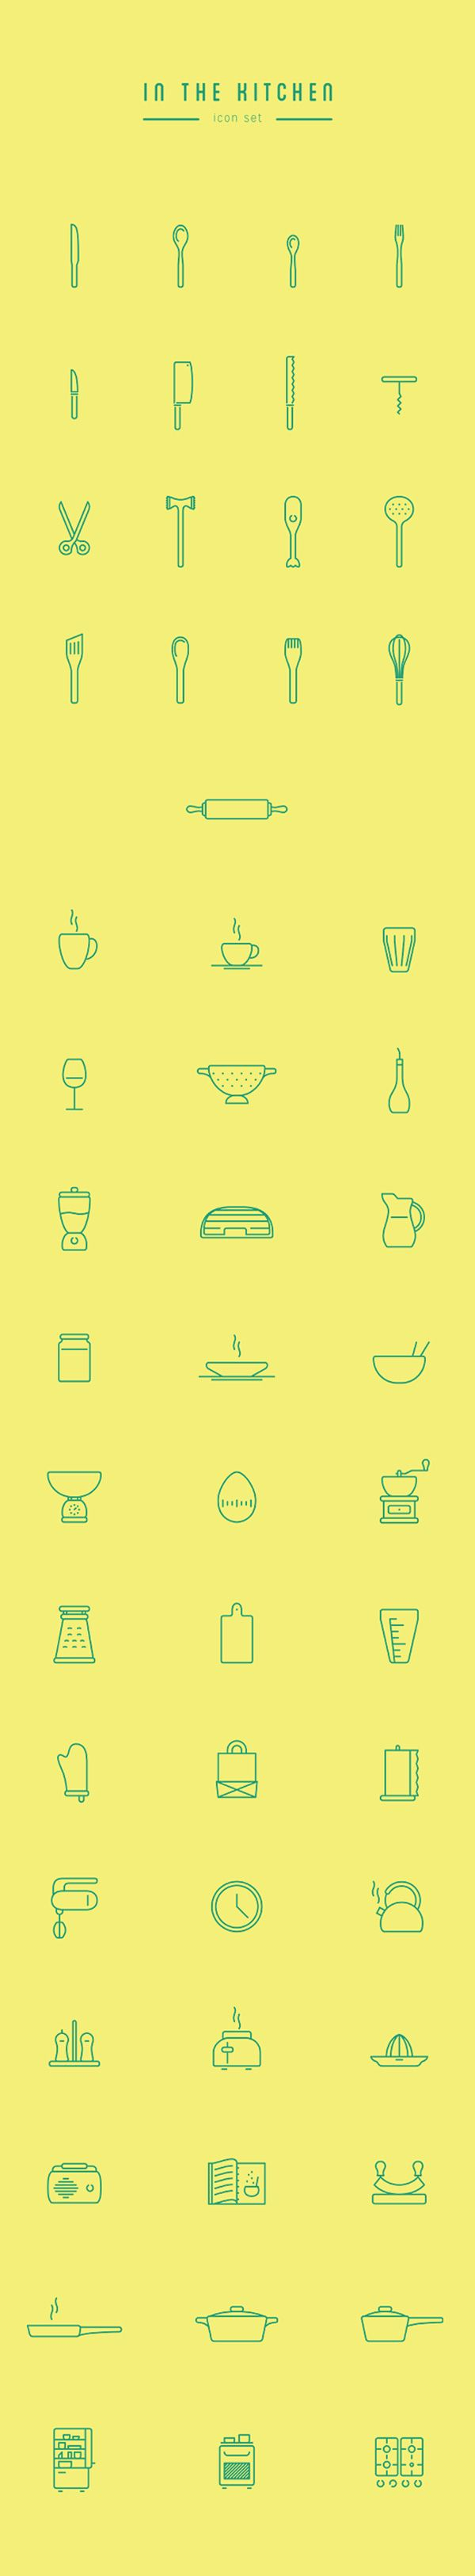 Free Download : In The Kitchen Icon Set